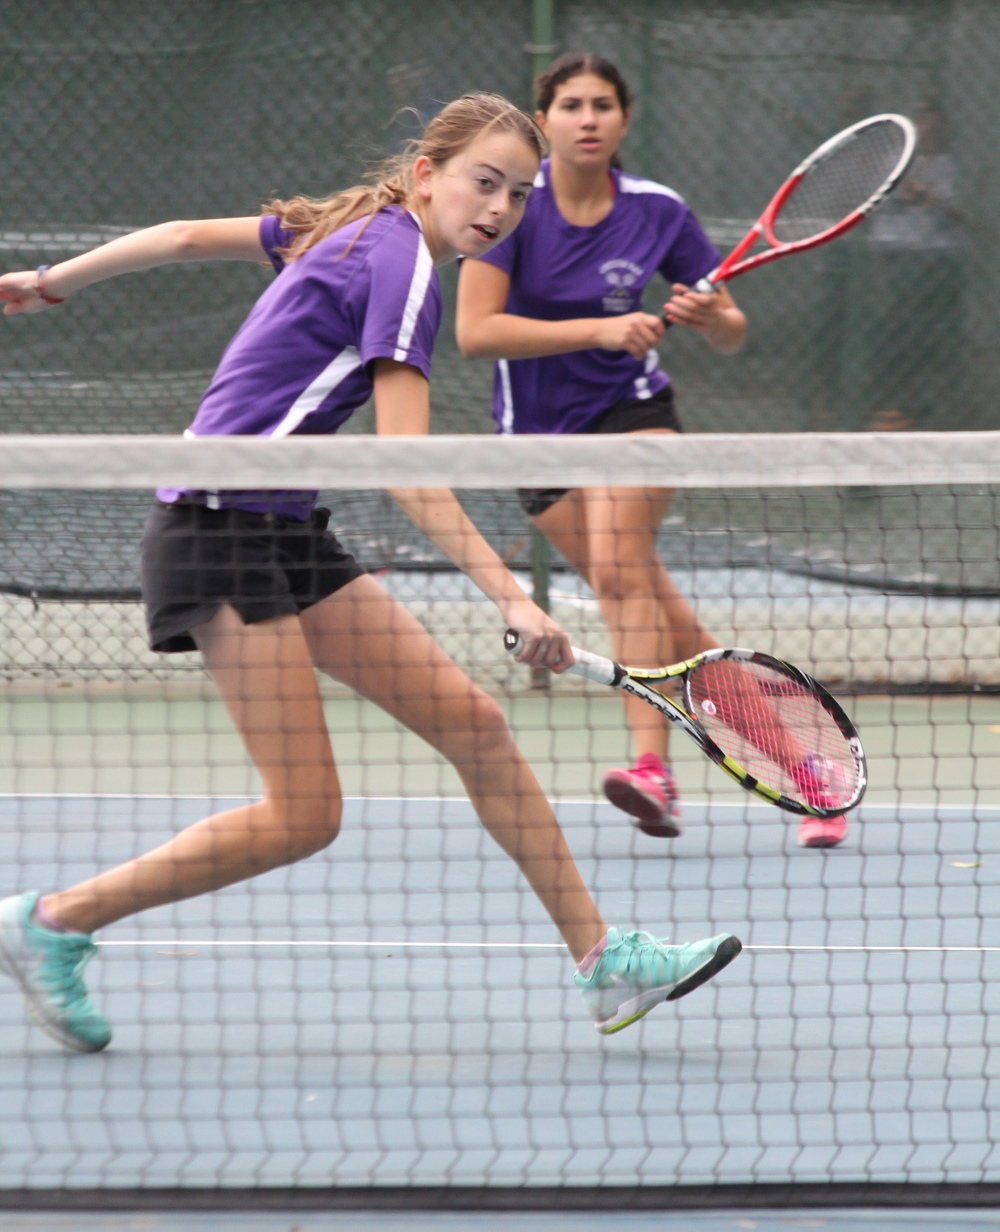 Despite the nerves brought on by the large crowd, television cameras and color commentators, Celeste Matute and Courtney Kowalsky of Oyster Bay High School were able to outshine a top-seeded team and win the 2014 New York State Doubles Tennis Championship in Latham, N.Y. on Nov. 3. READ MORE  (Photo: Keith Kowalsky)